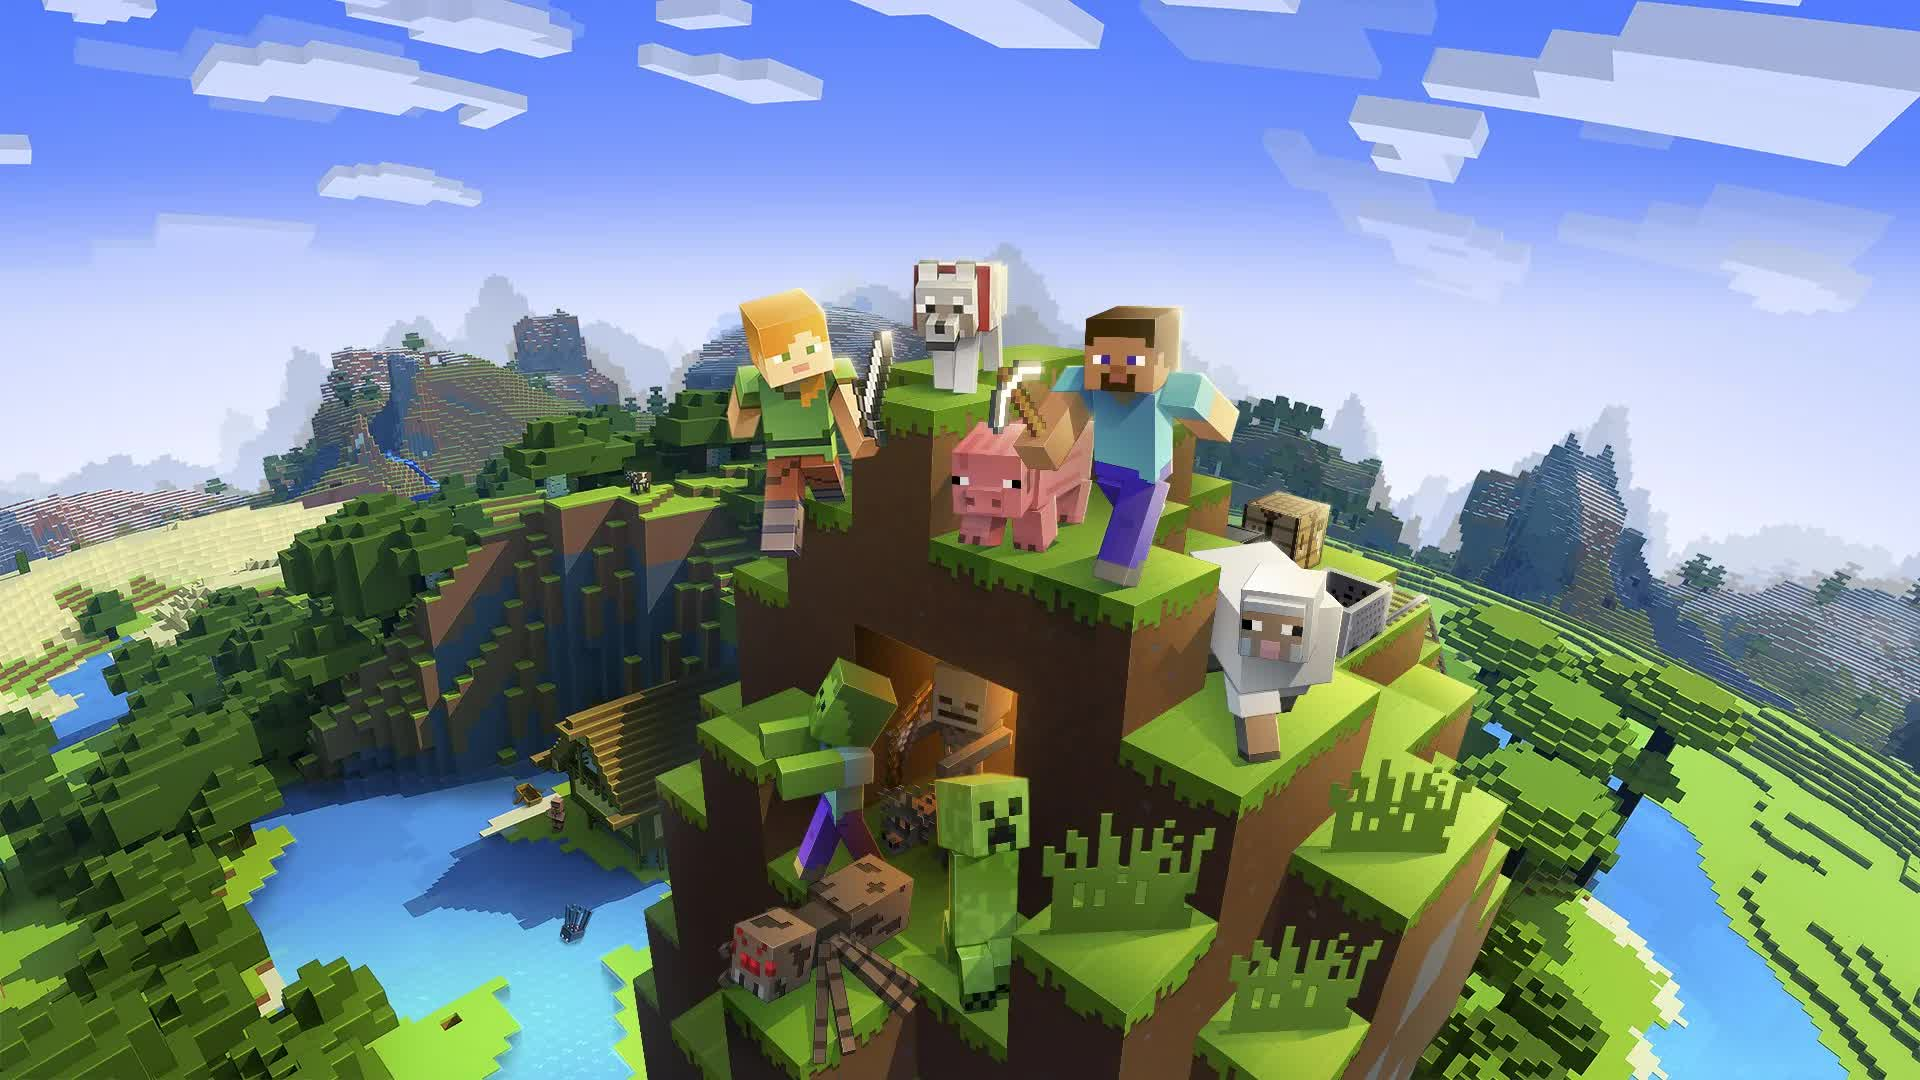 Mojang Studios is adding PS VR support to Minecraft later this month